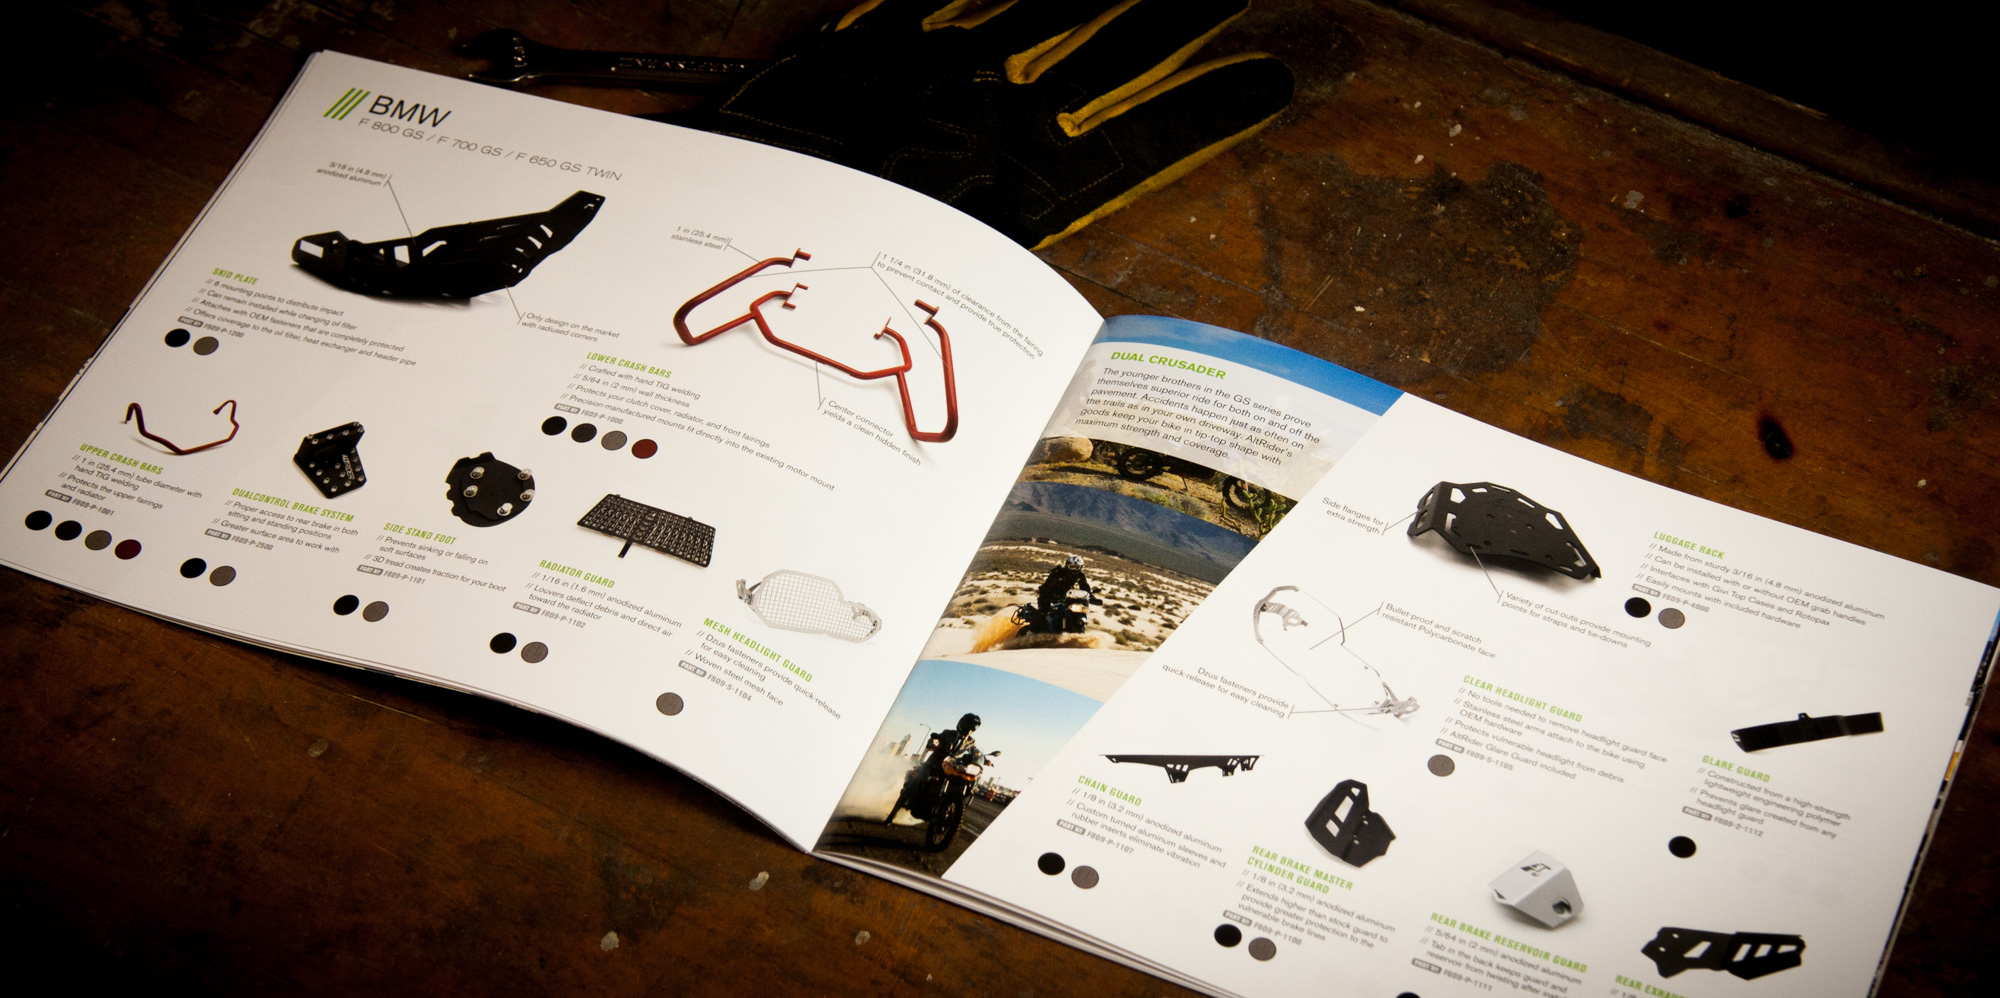 Spread containing products for the BMW F 800 GS / F 700 GS / F 650 GS Twin in the AltRider catalog.